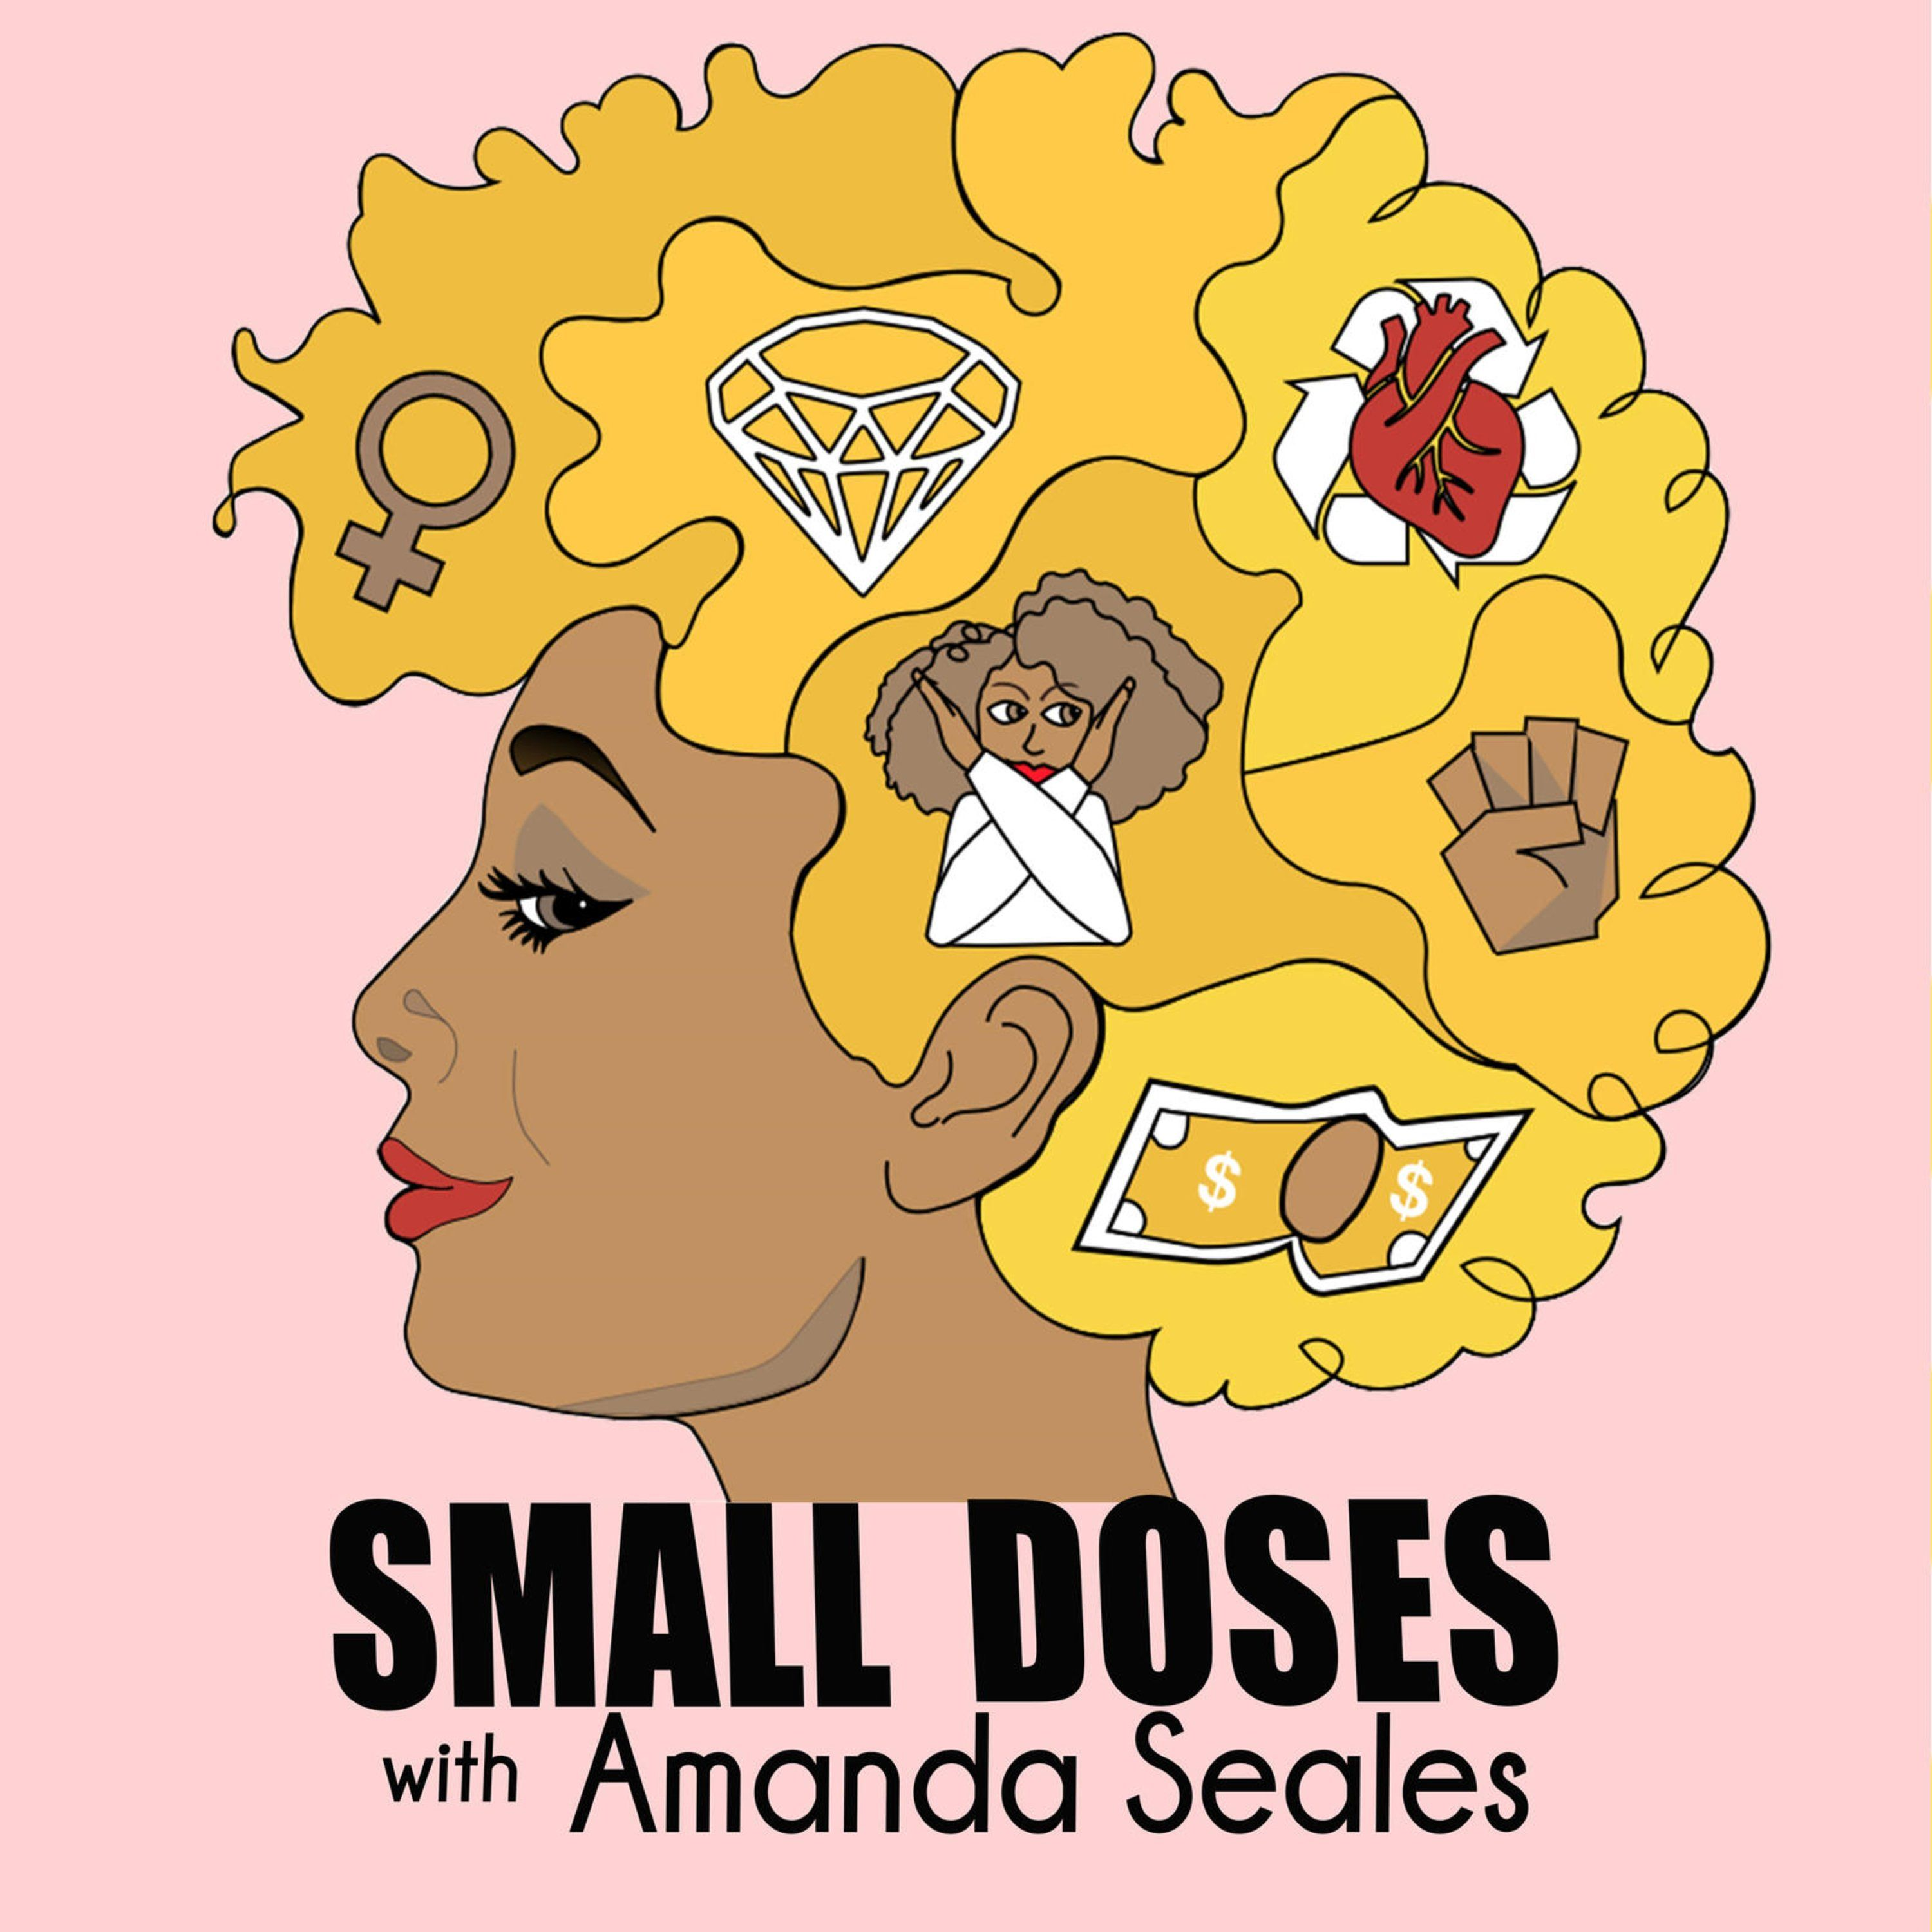 Small Doses with Amanda Seales | Listen via Stitcher for Podcasts